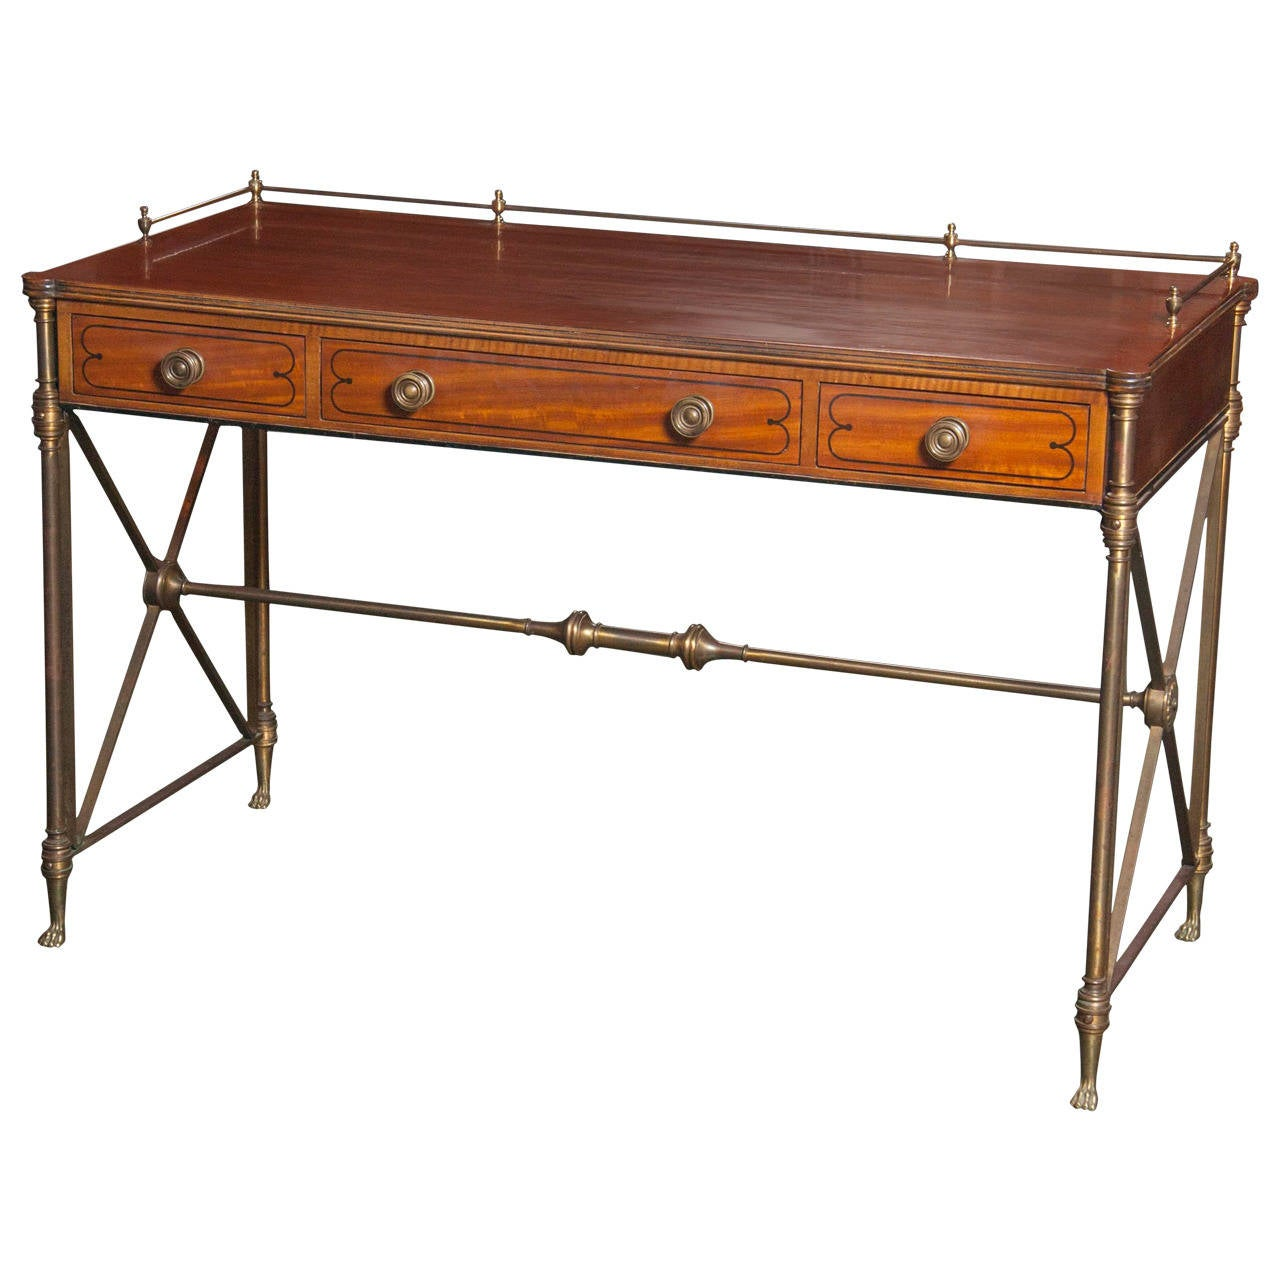 Regency Style Rosewood Campaign Desk For Sale at 1stdibs